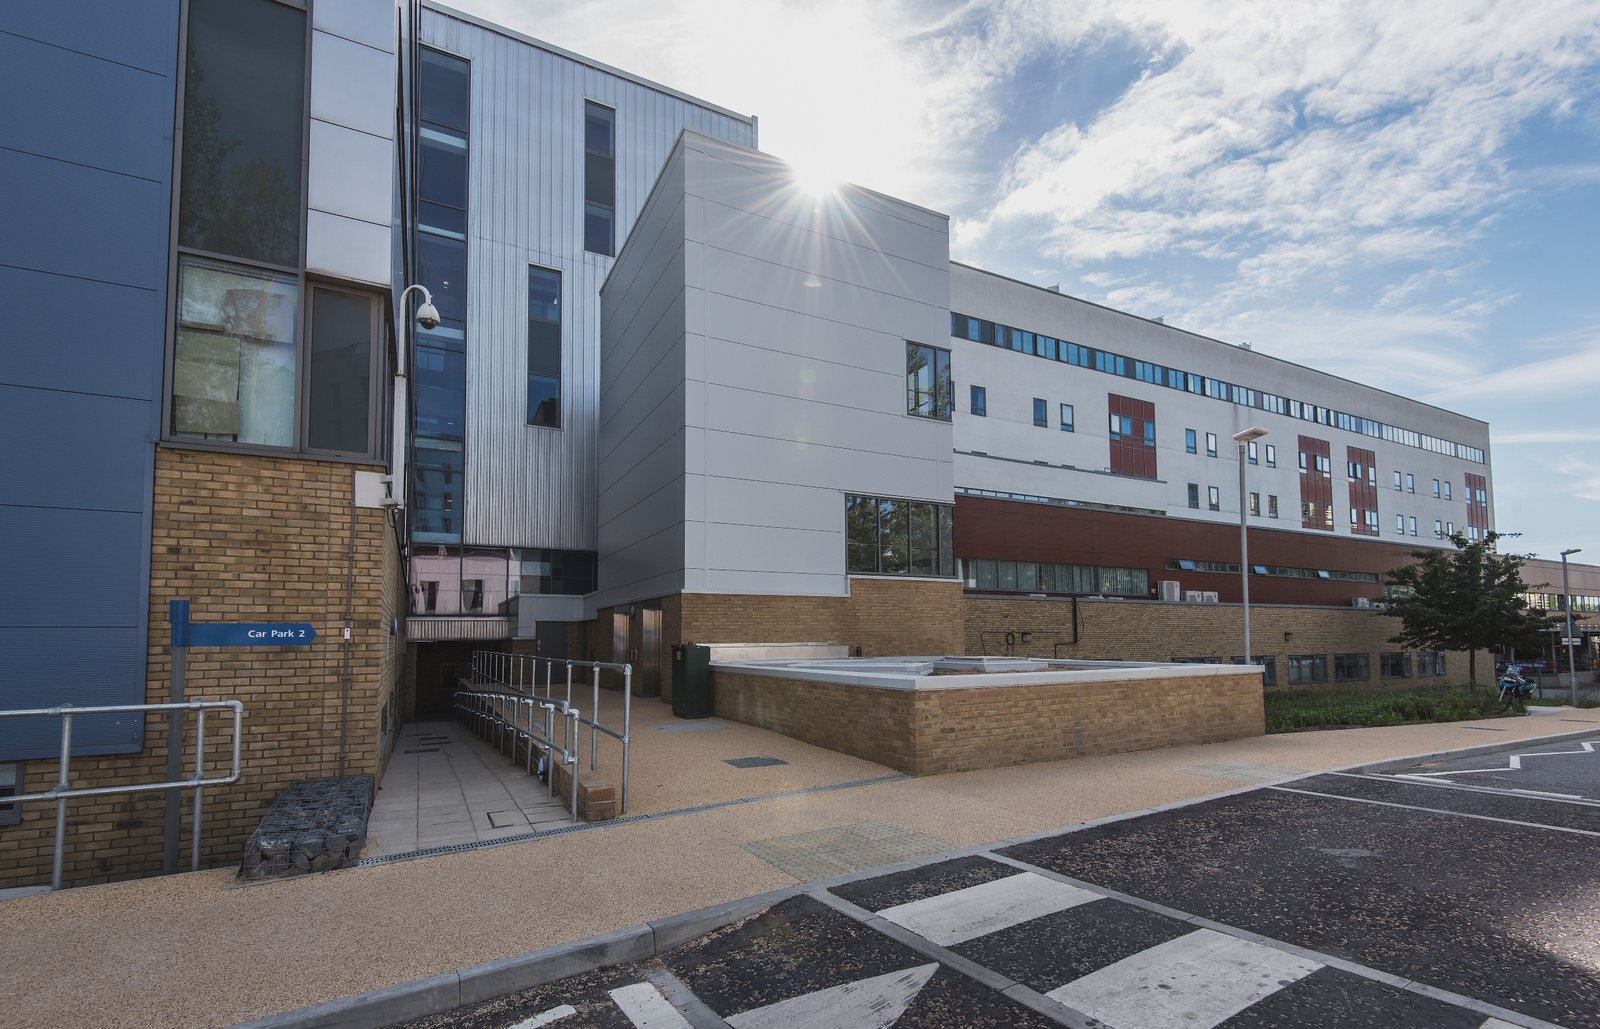 Picture of the outside of the Addenbrookes Hospital Building